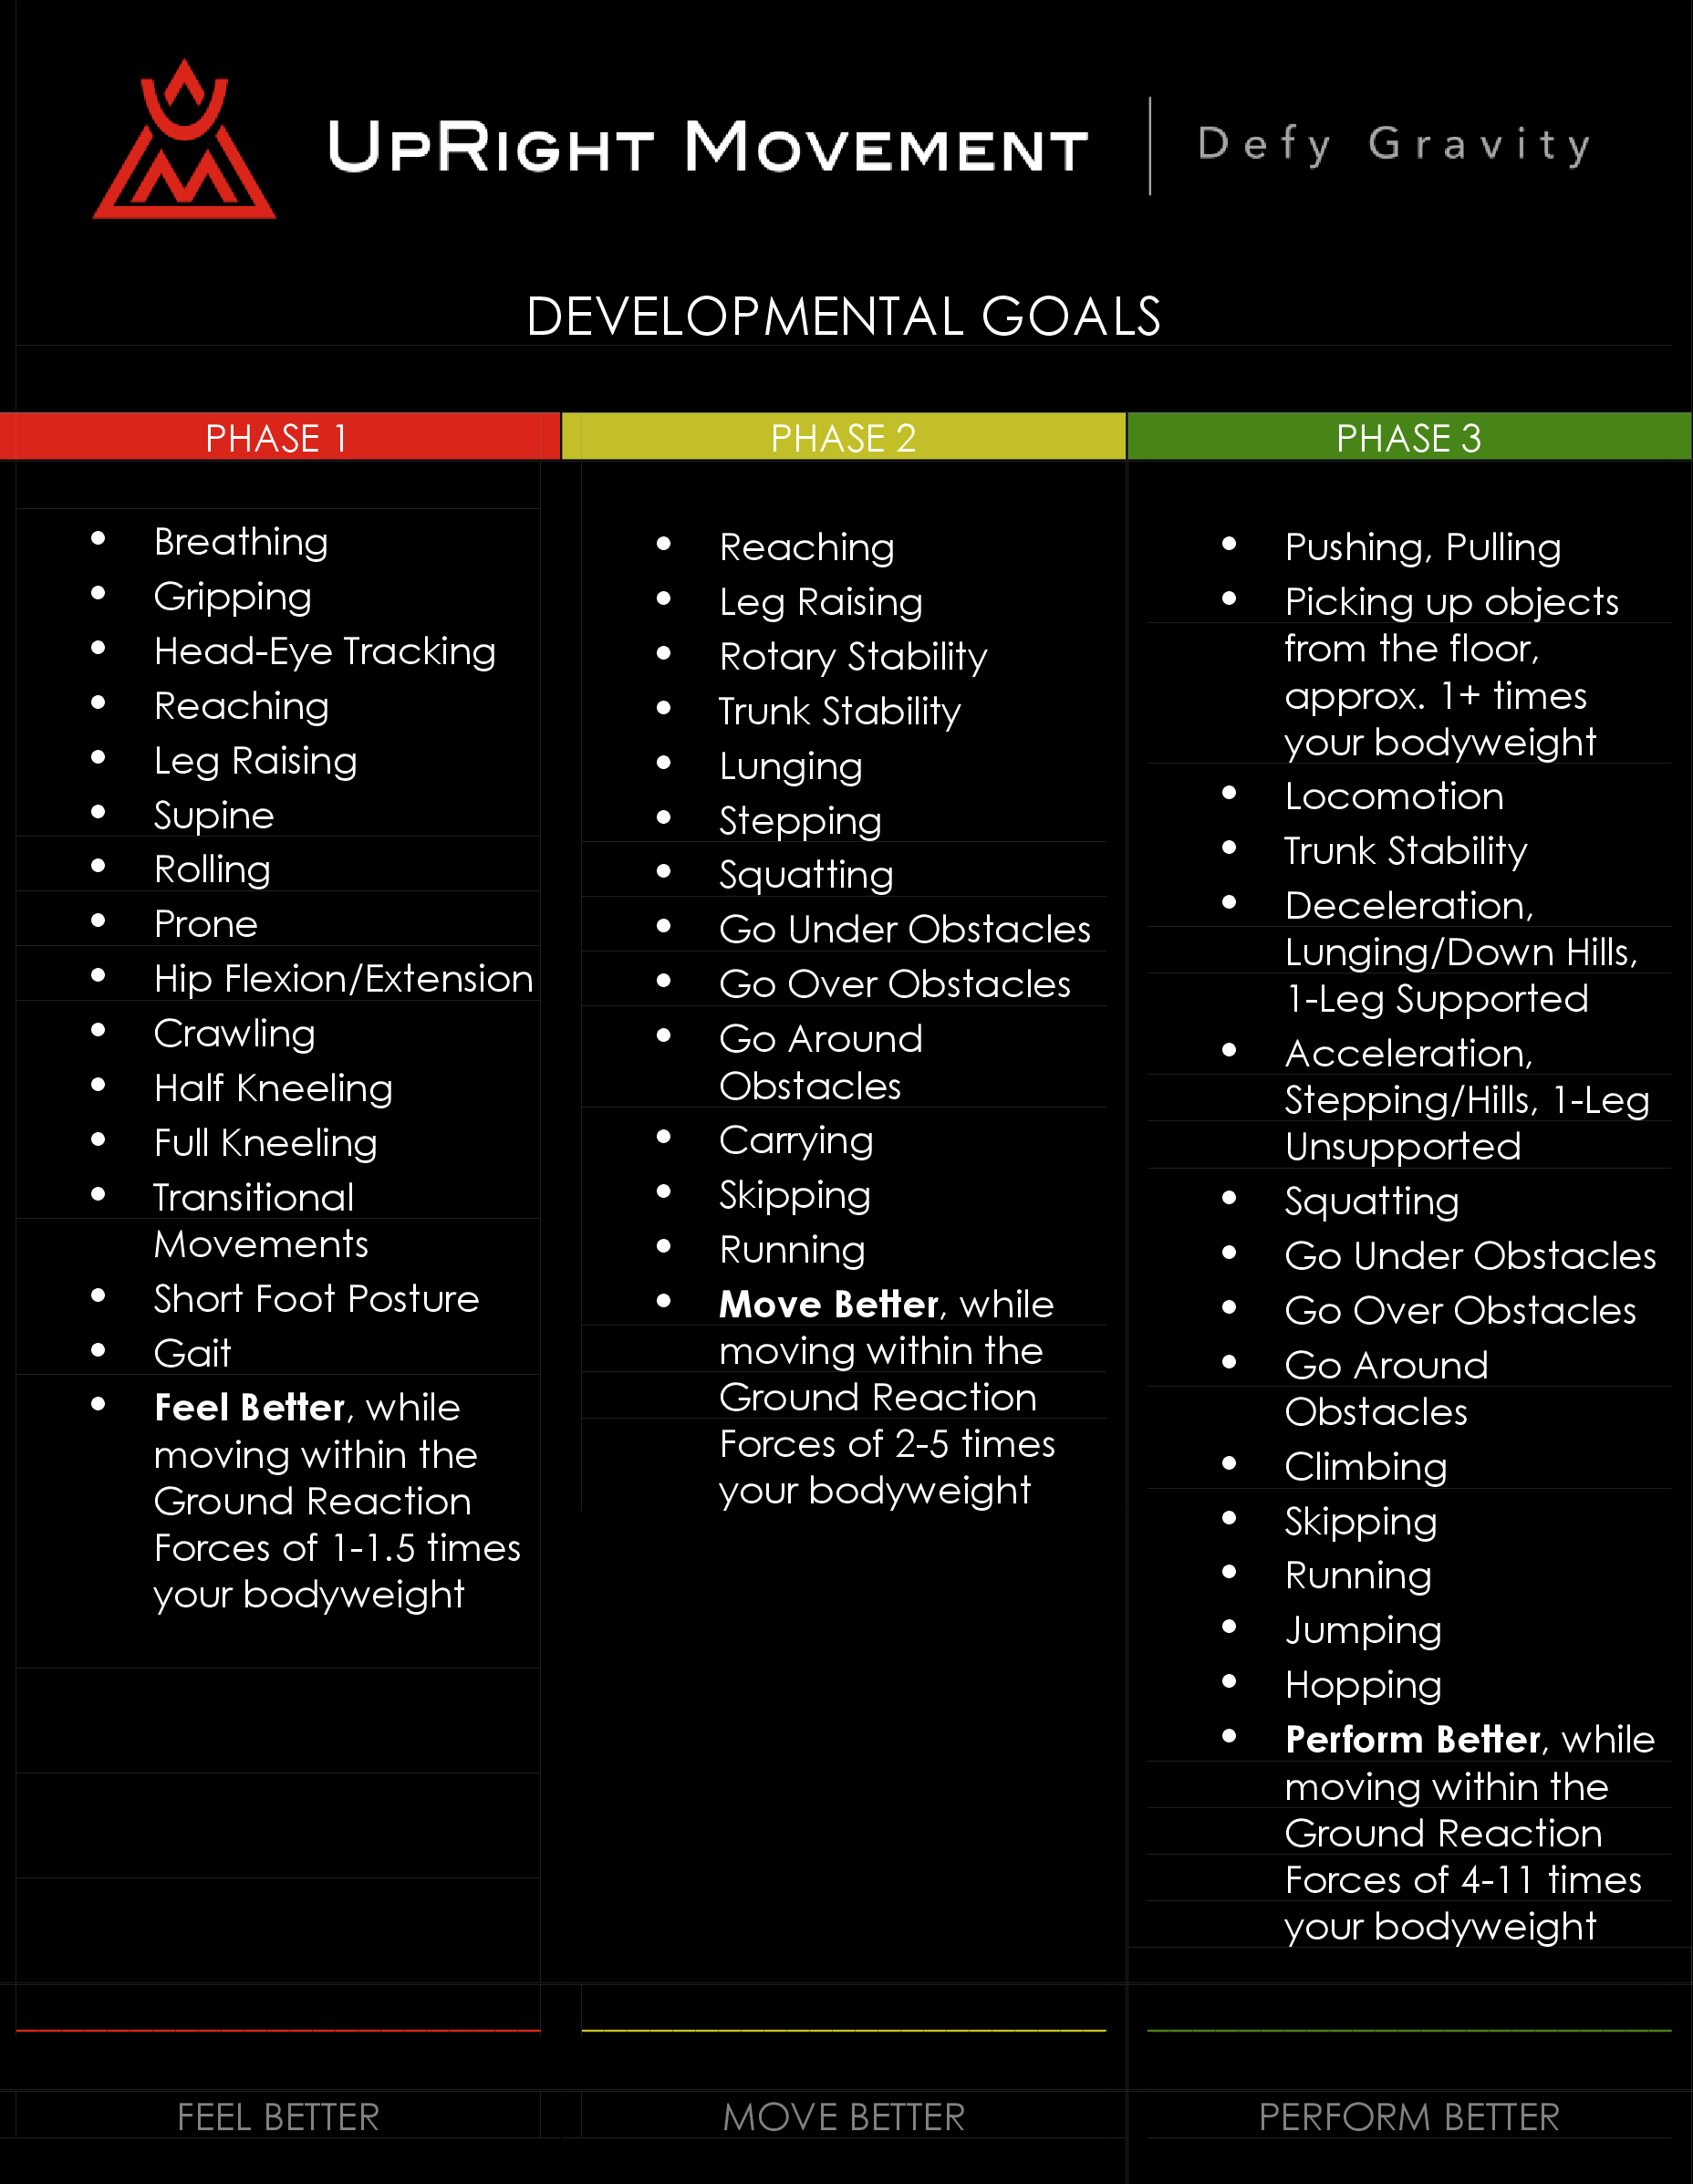 DEVELOPMENTAL-GOALS